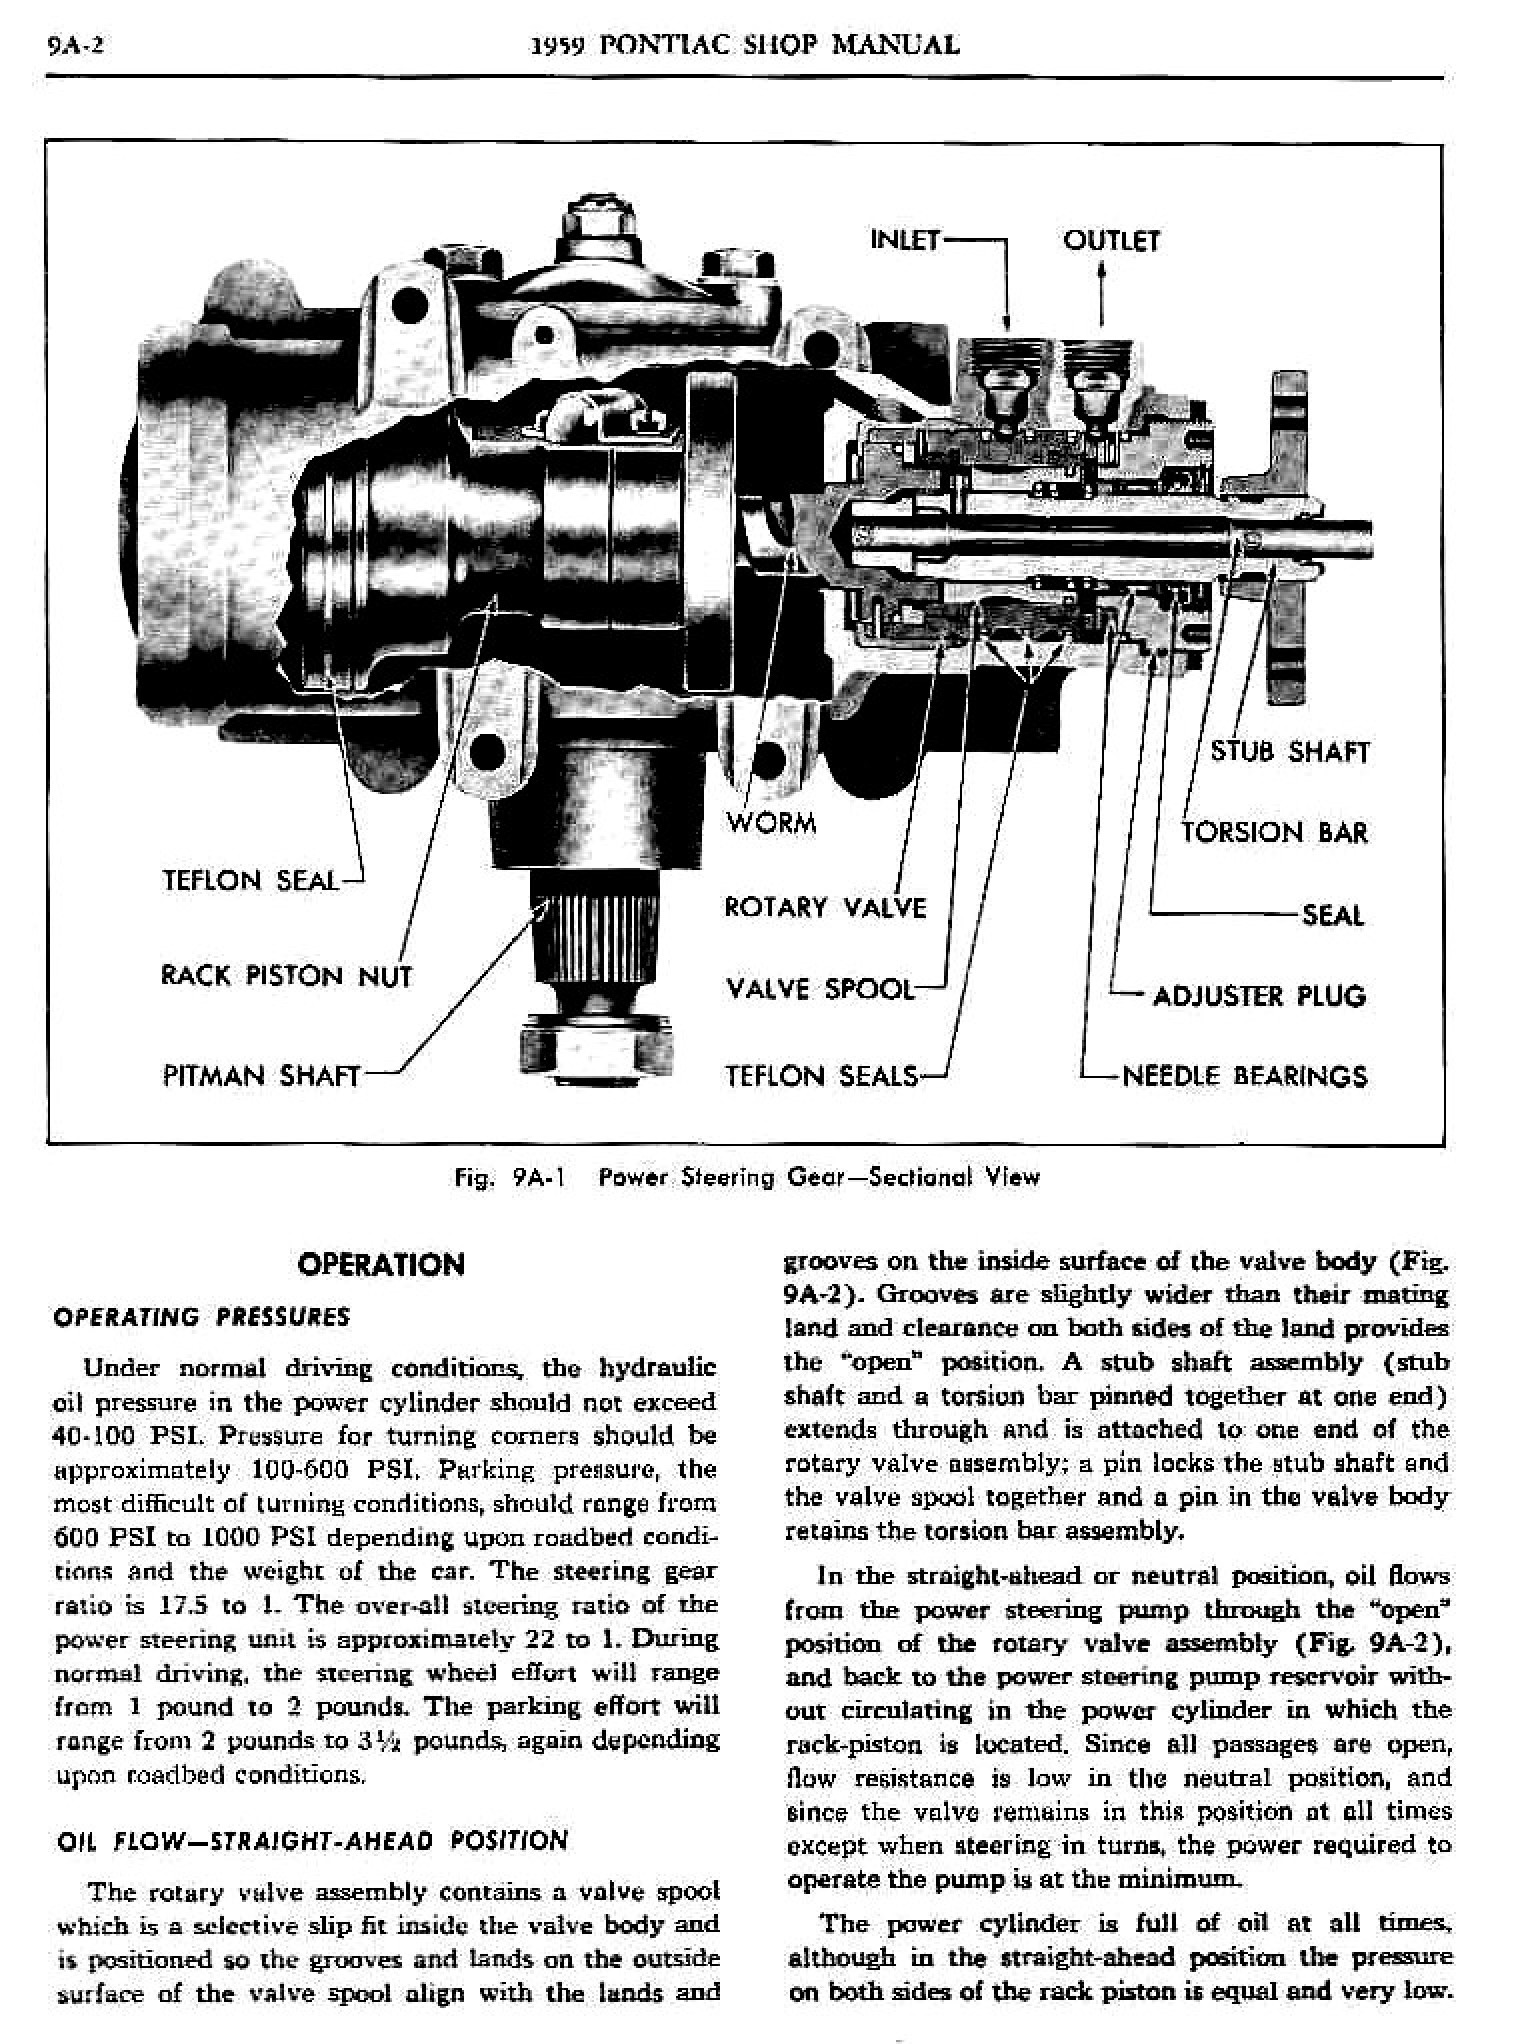 1959 Pontiac Shop Manual- Power Steering Page 2 of 40